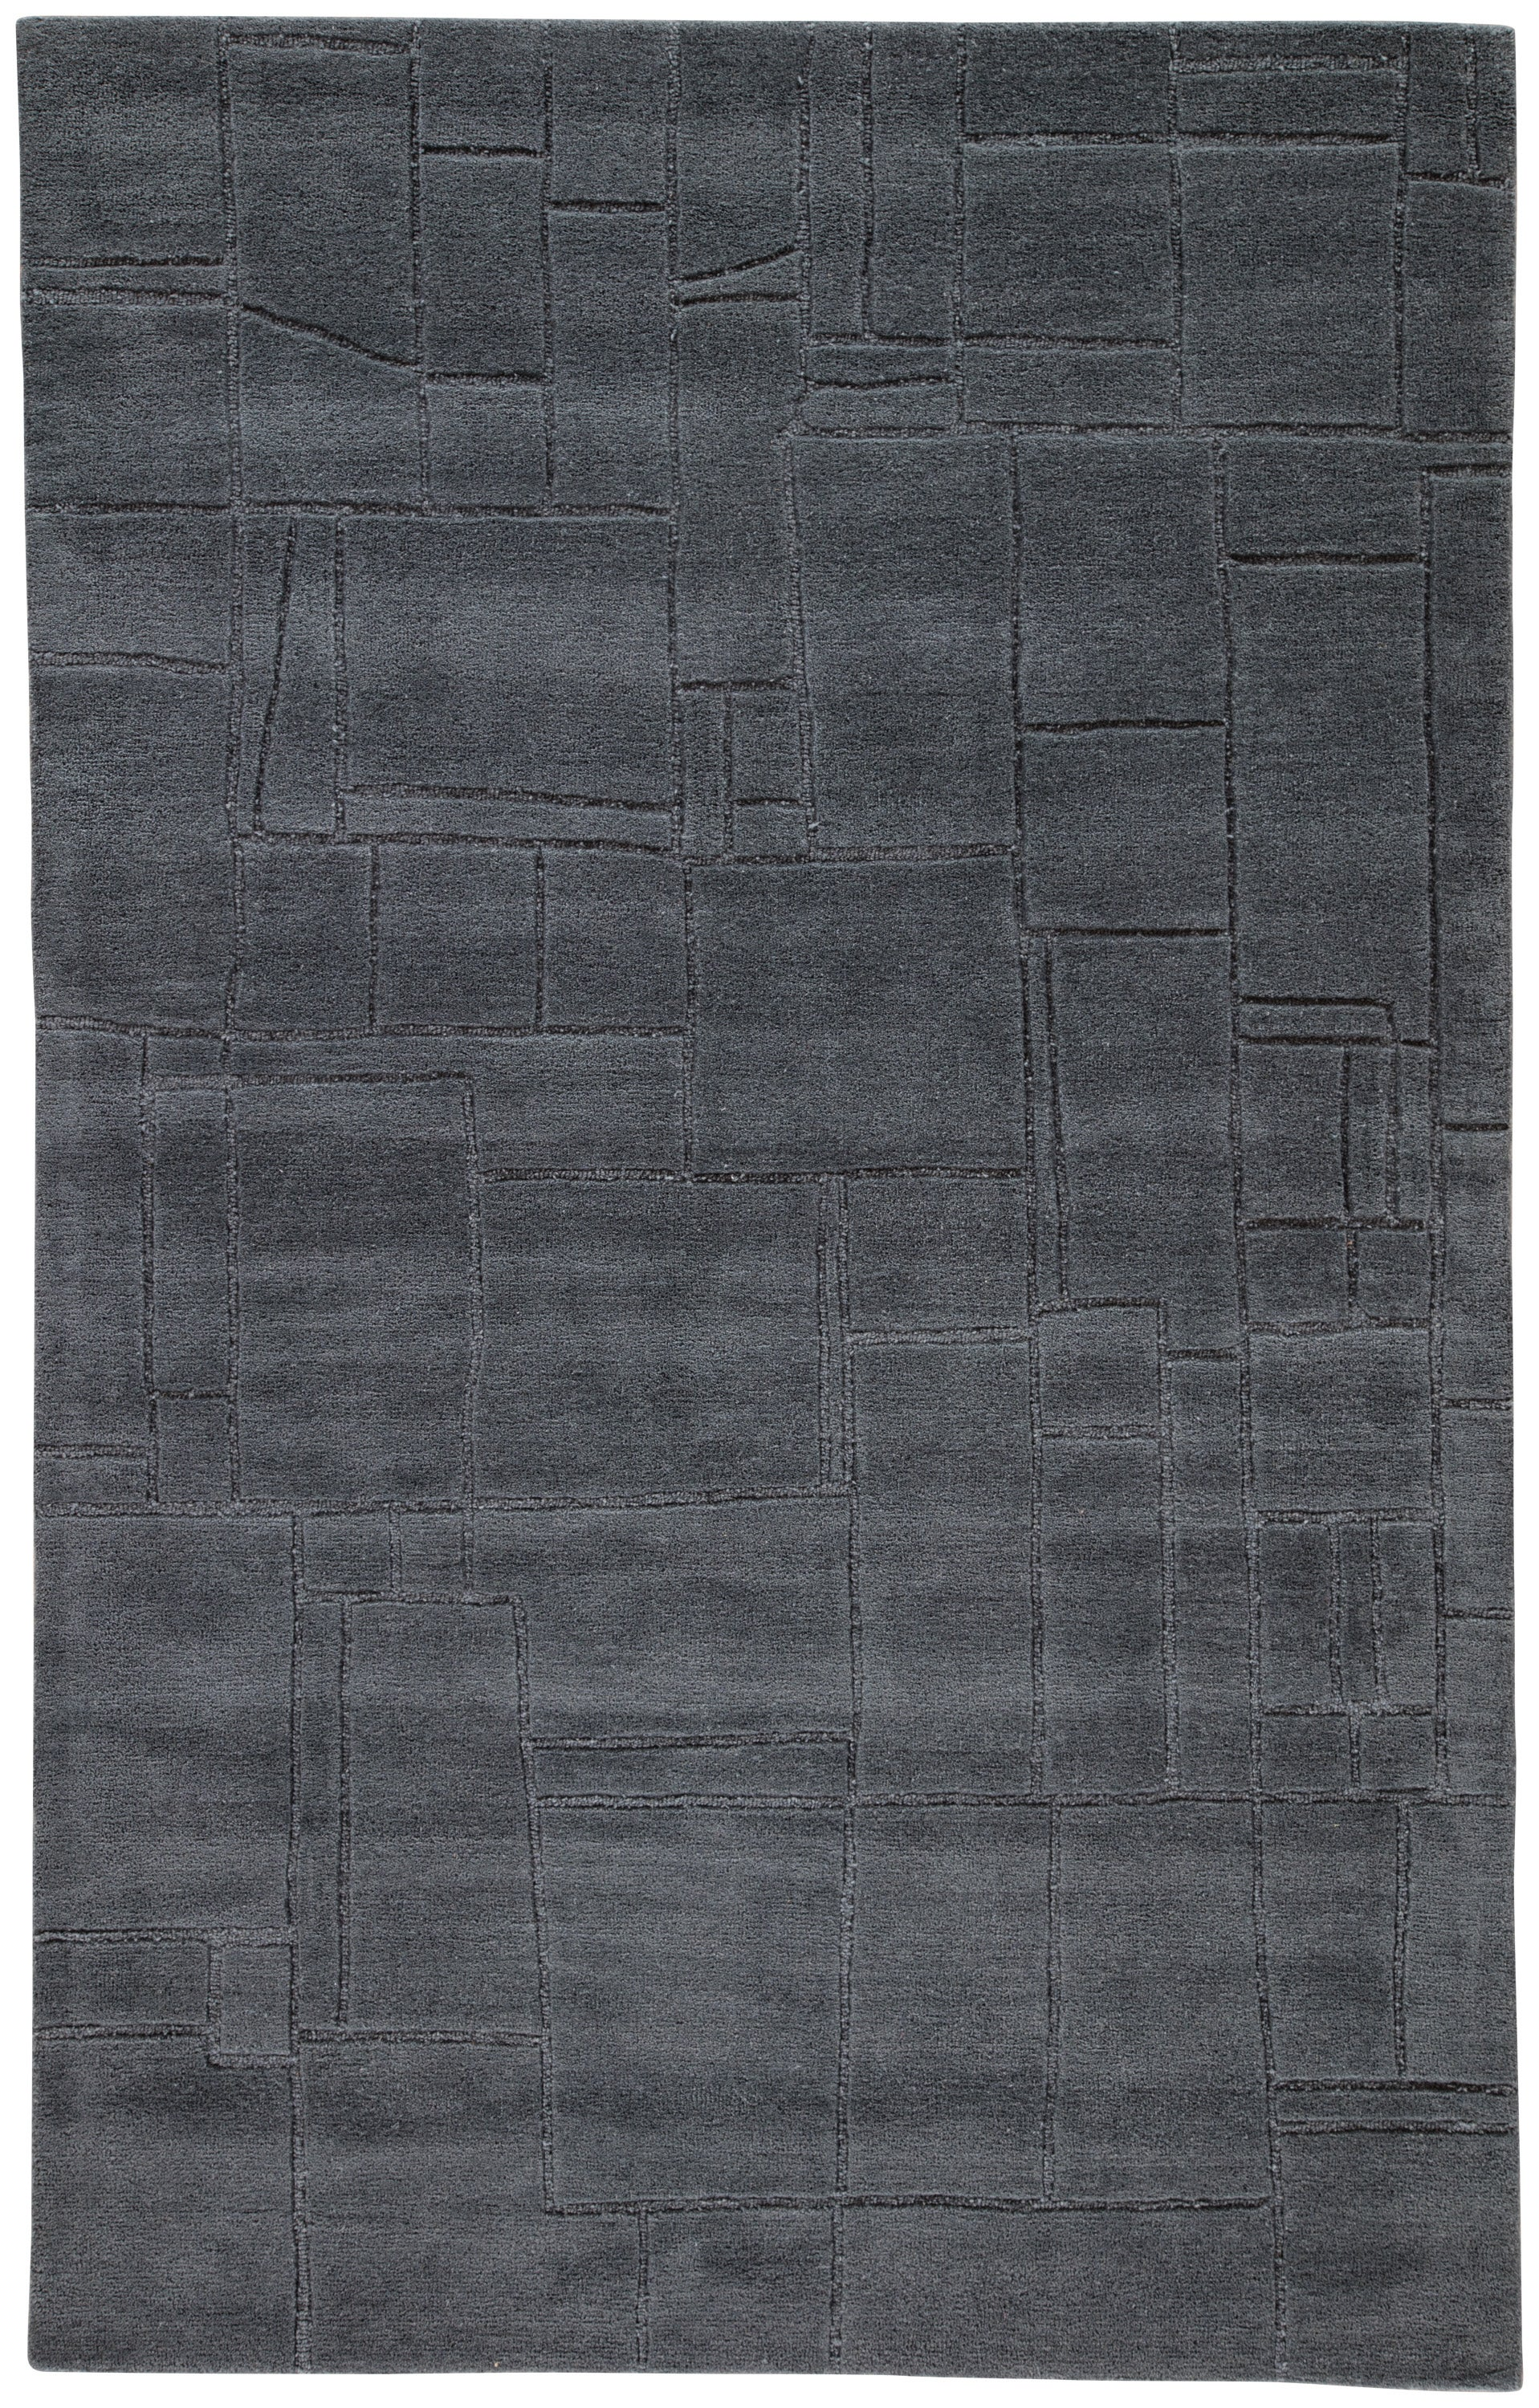 Rectangle 10x14 Gray Solid Hand Tufted Wool Modern recommended for Bedroom, Bathroom, Dining Room, Office, Hallway, Living Room